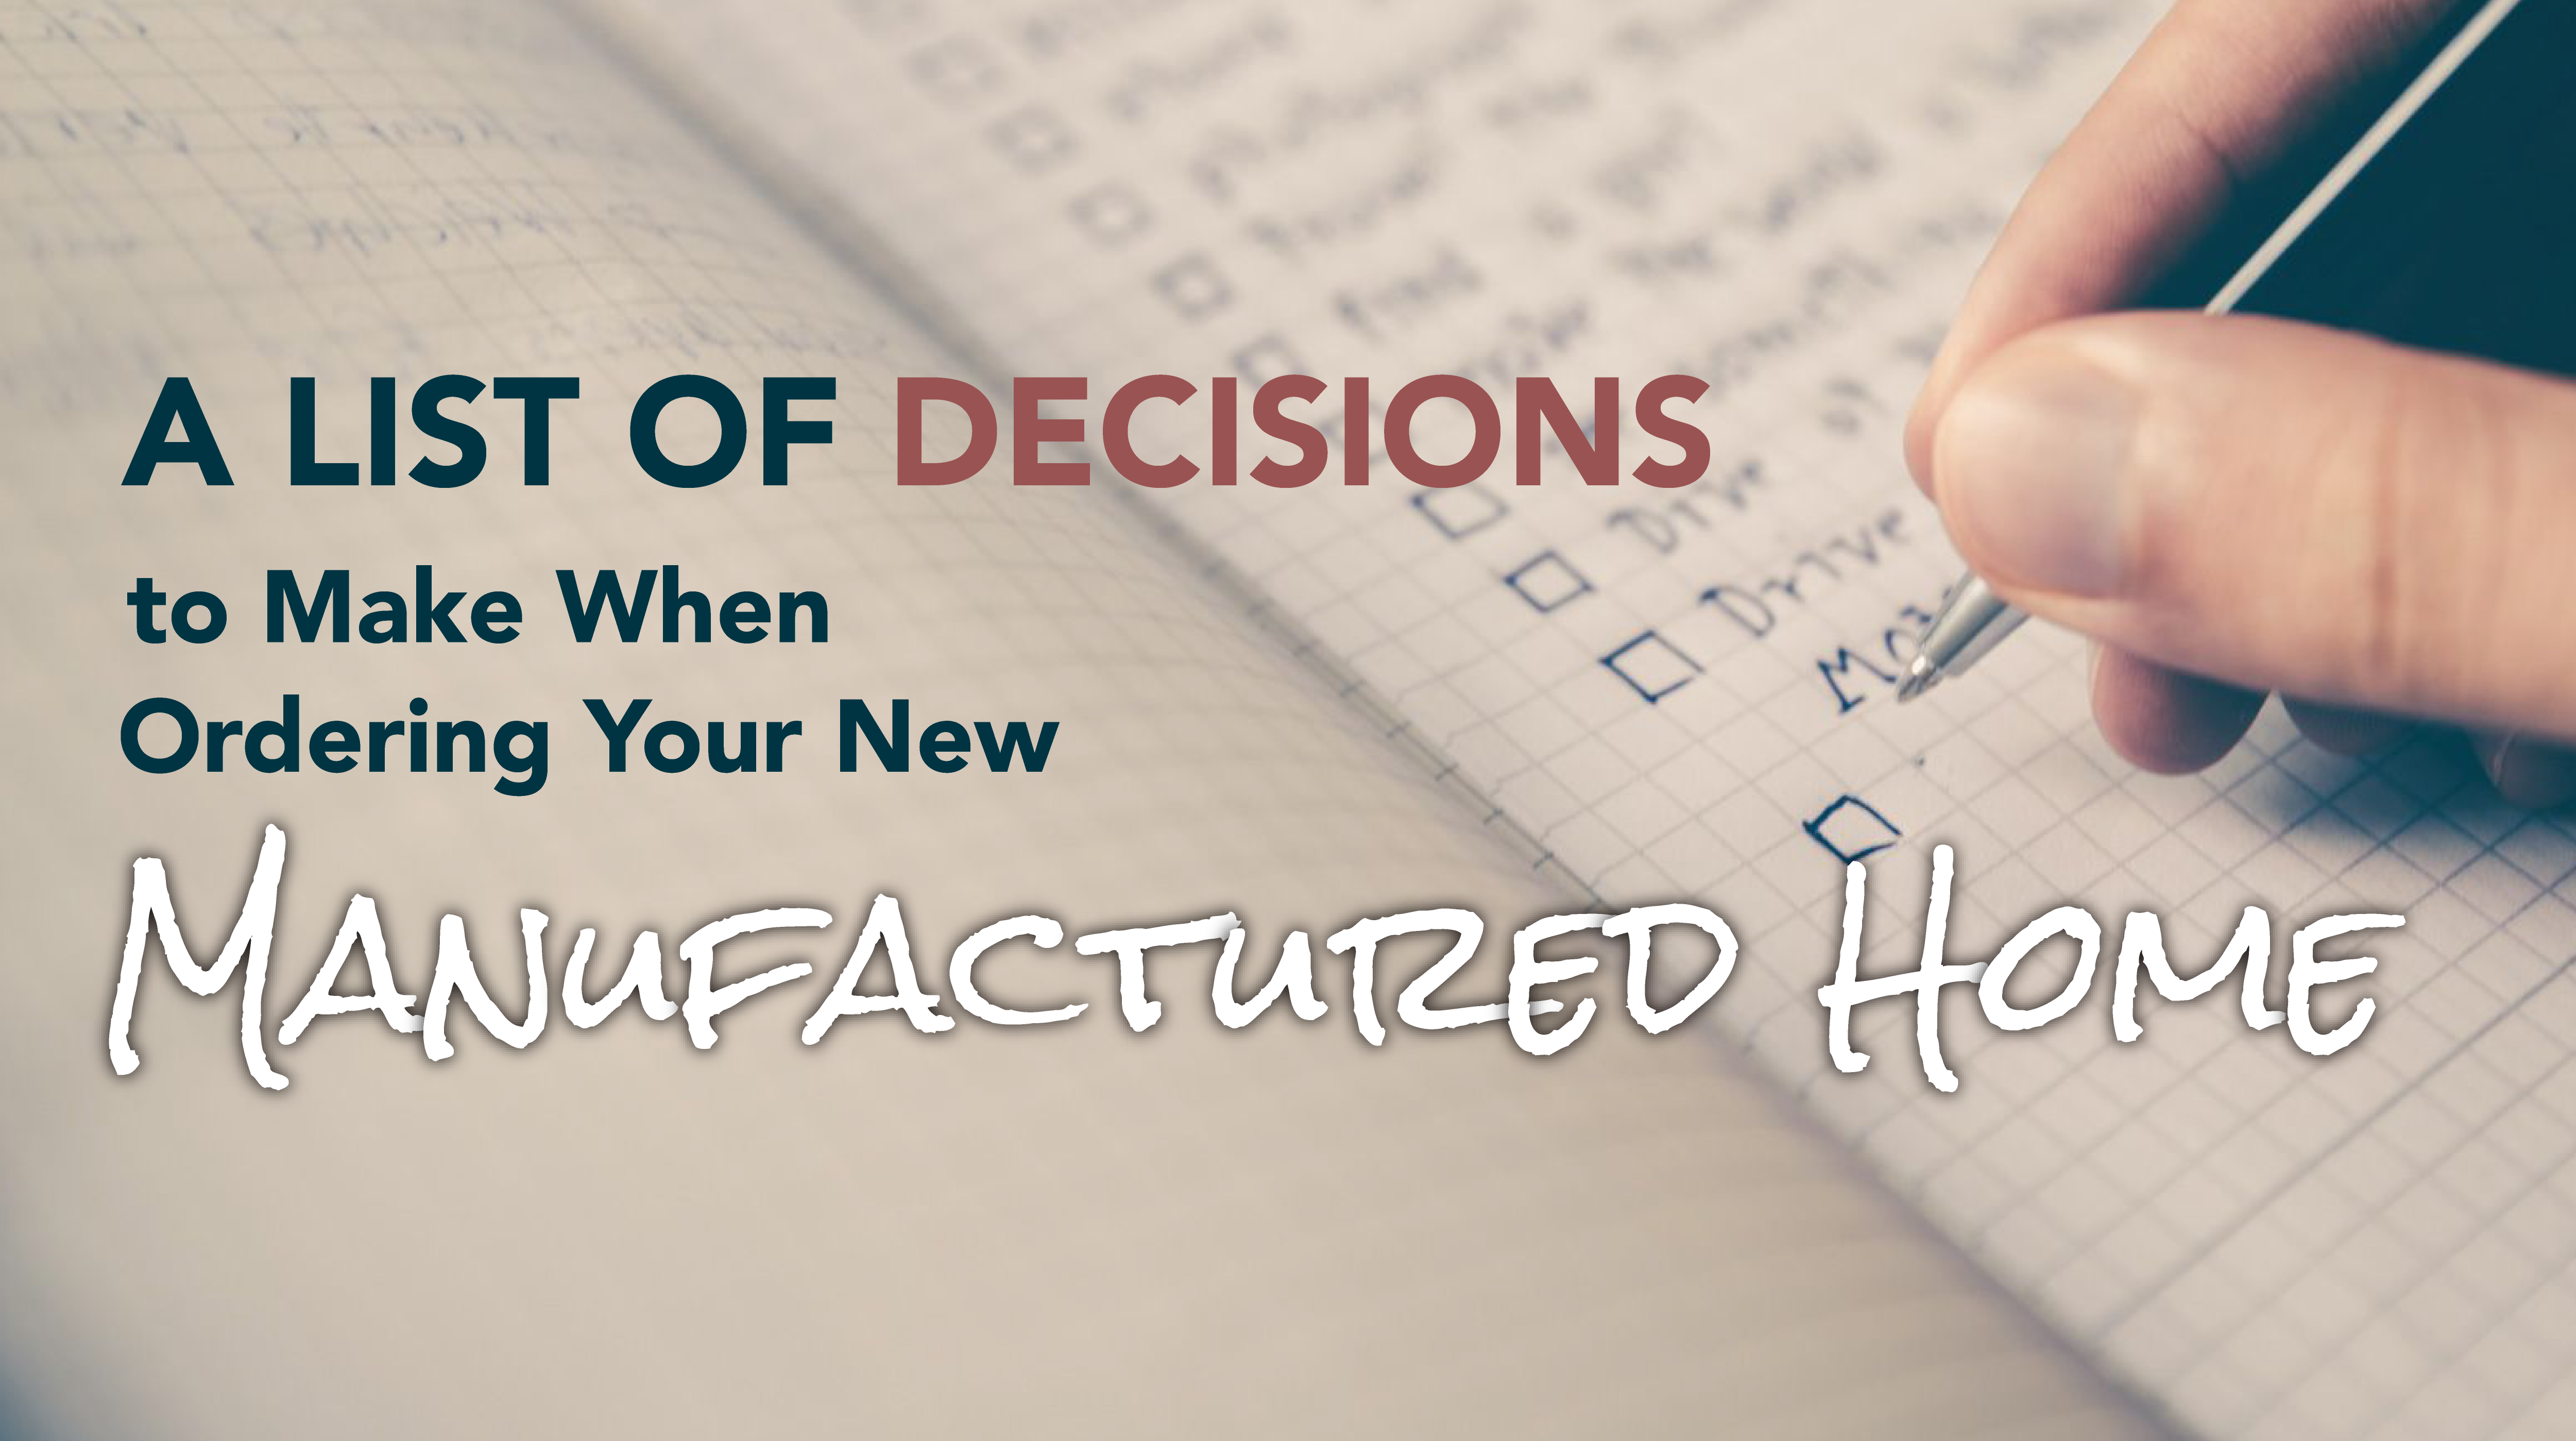 A List of Decisions to Make When Ordering Your New Manufactured Home